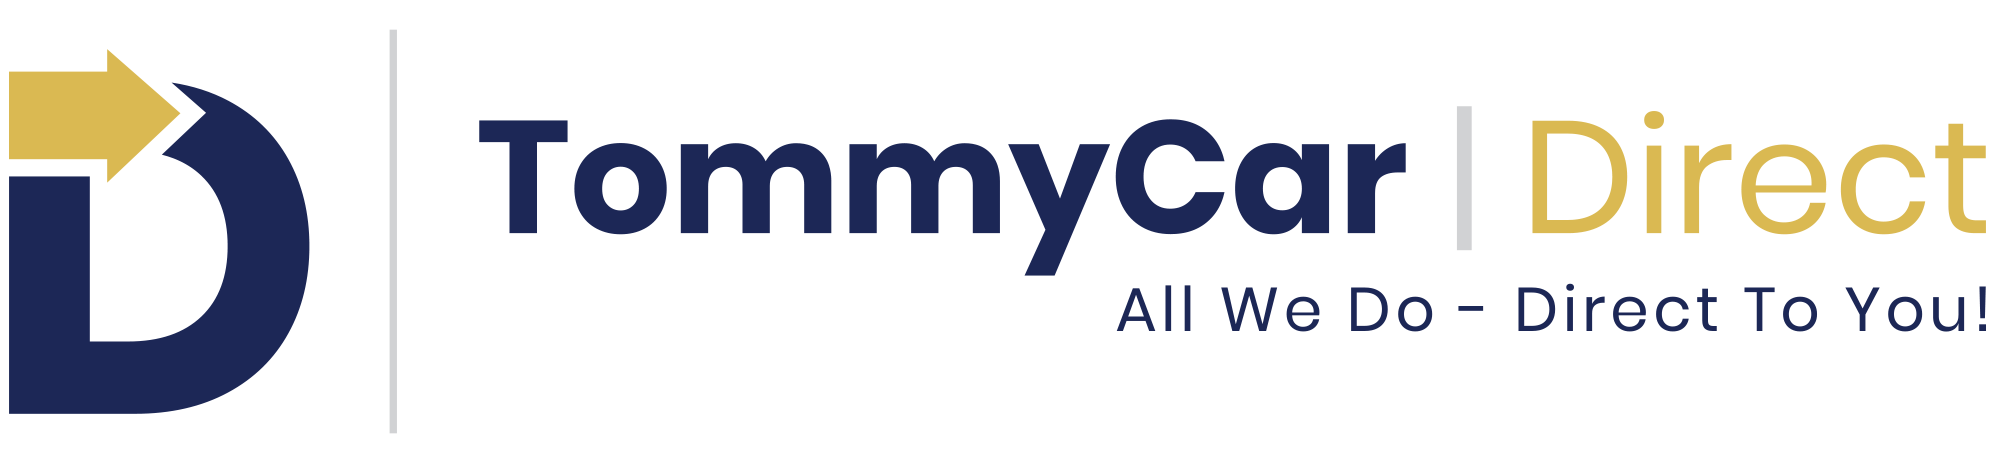 TommyCar Direct Logo